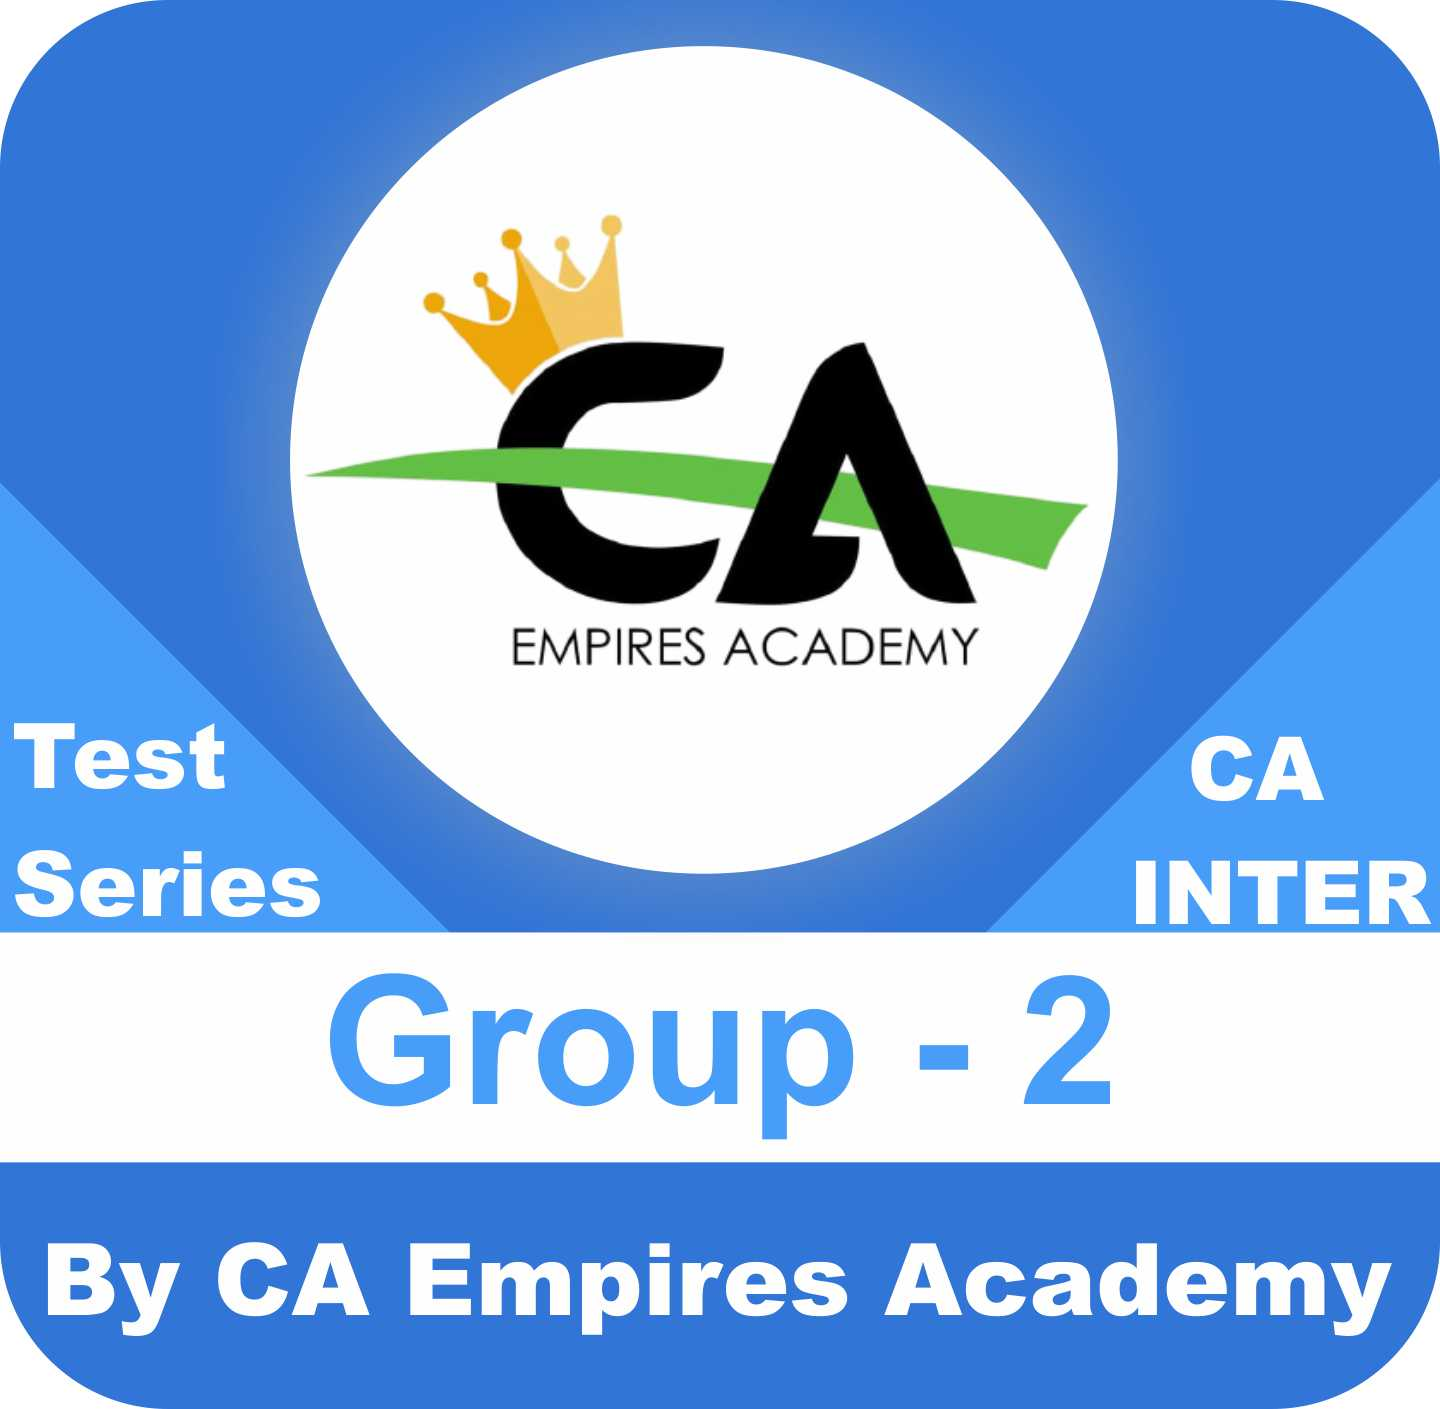 CA Inter Group Two Test Series in Gold Plan by CA Empires Academy